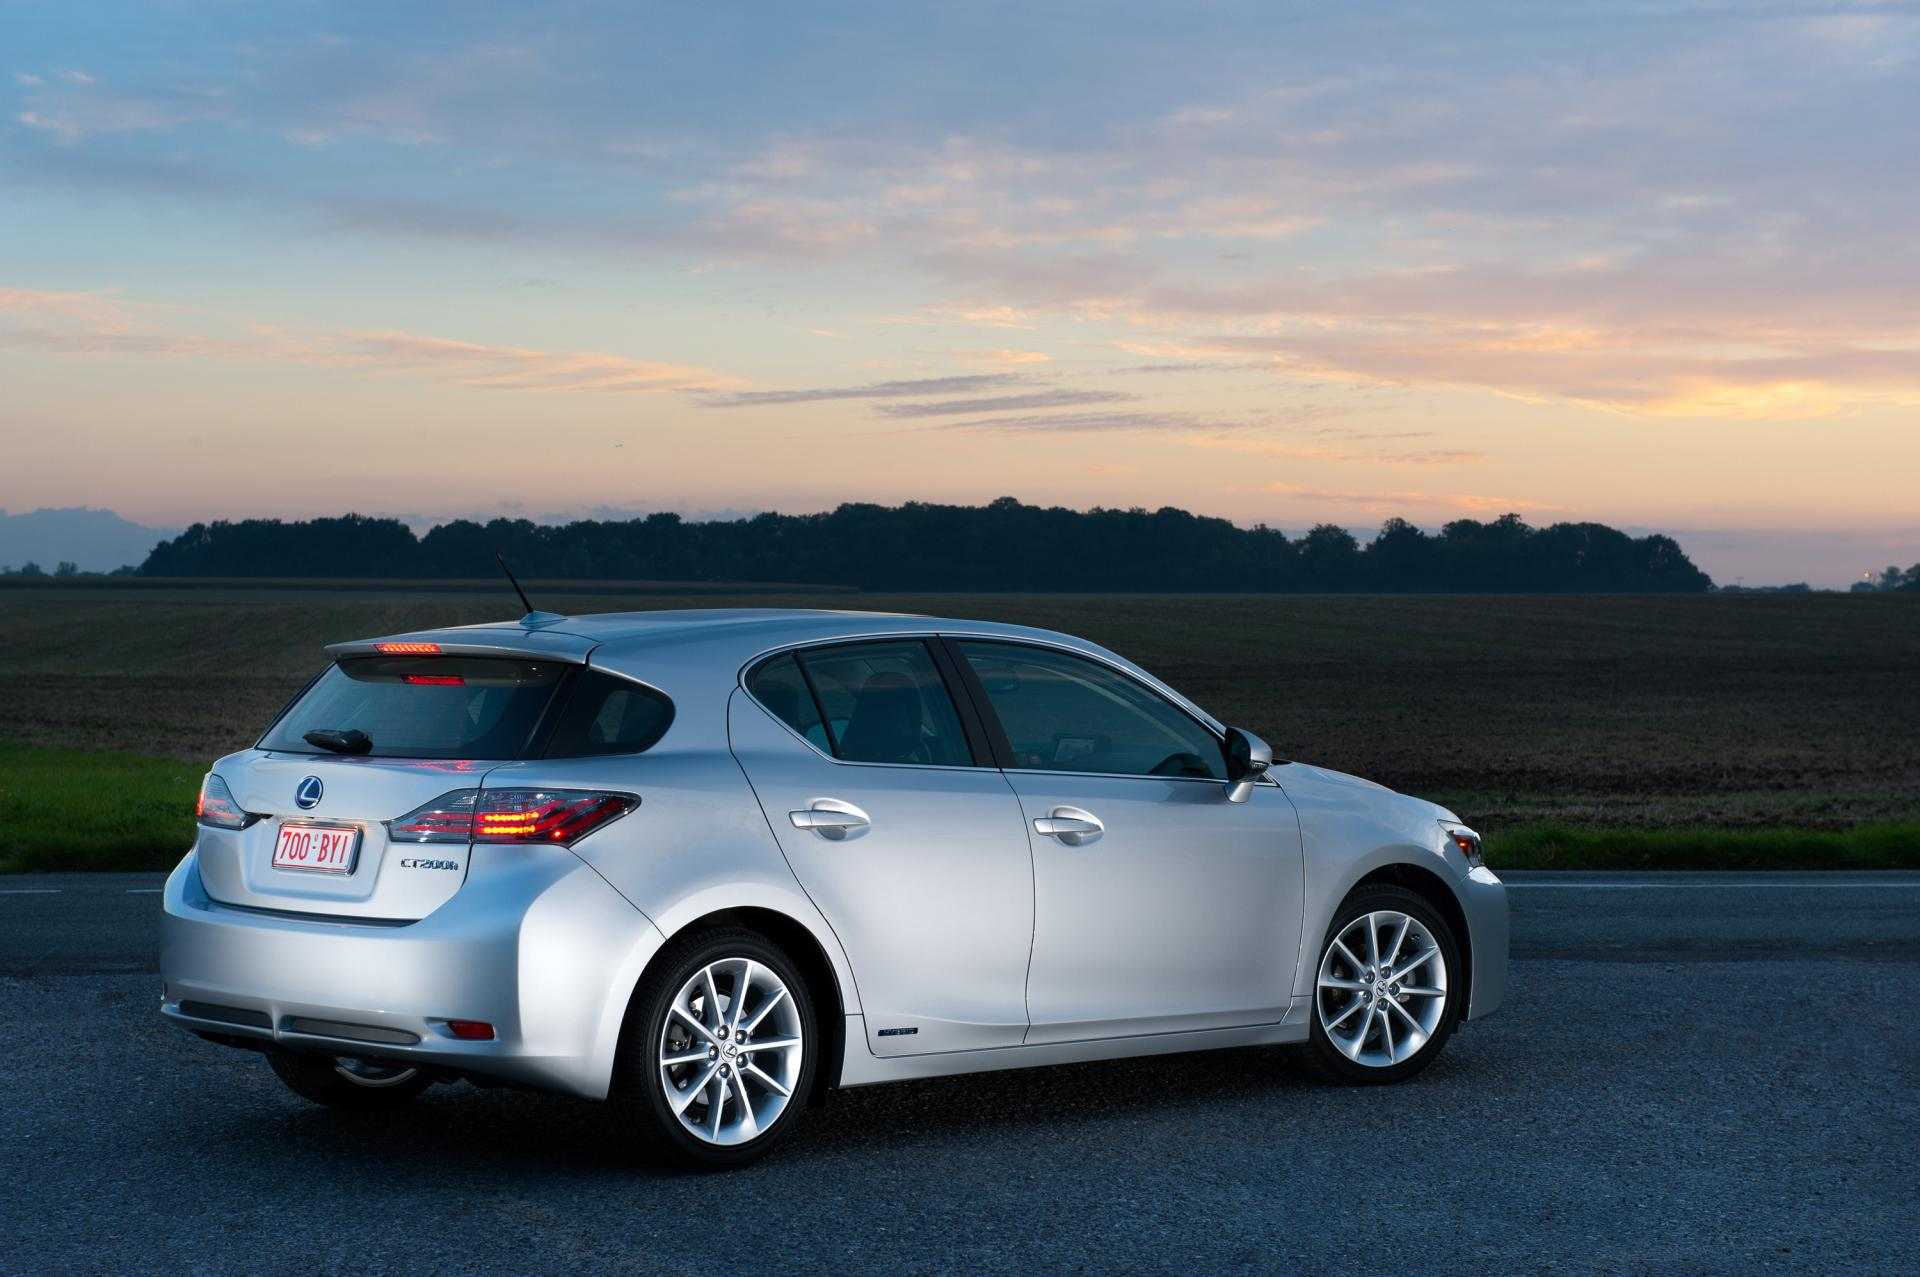 2012 Lexus CT 200h Information and photos ZombieDrive